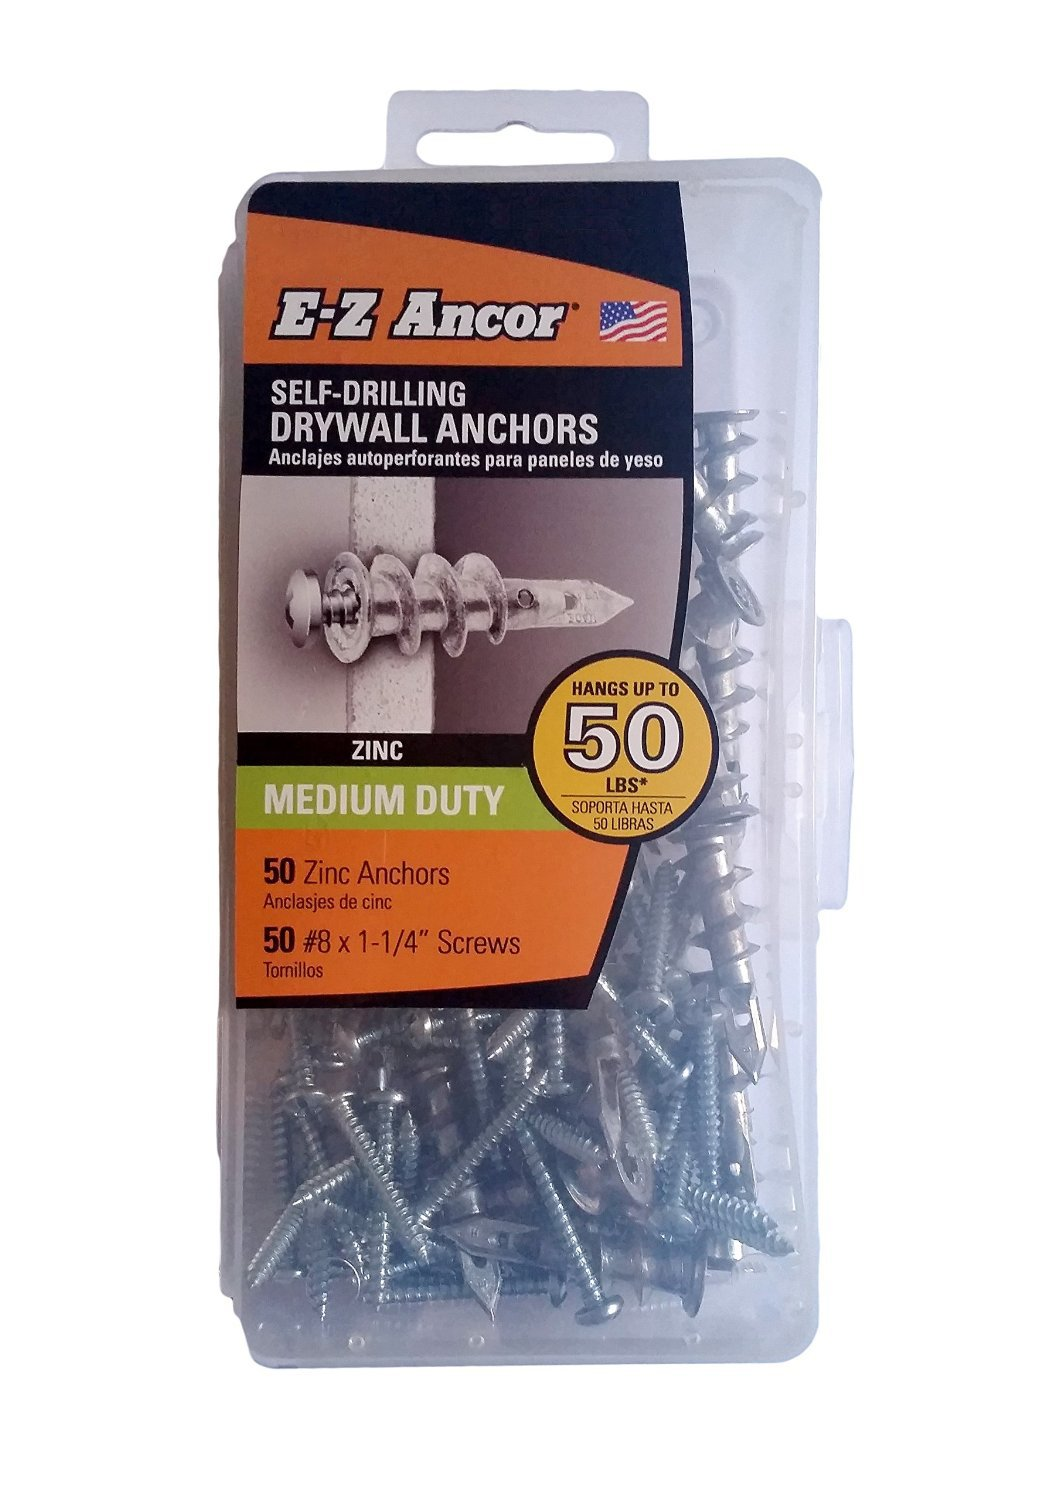 E-Z Ancor kit, 50 Zinc Self Drilling Drywall Anchors with 50 Phillip Screws #8 x 1-1/4